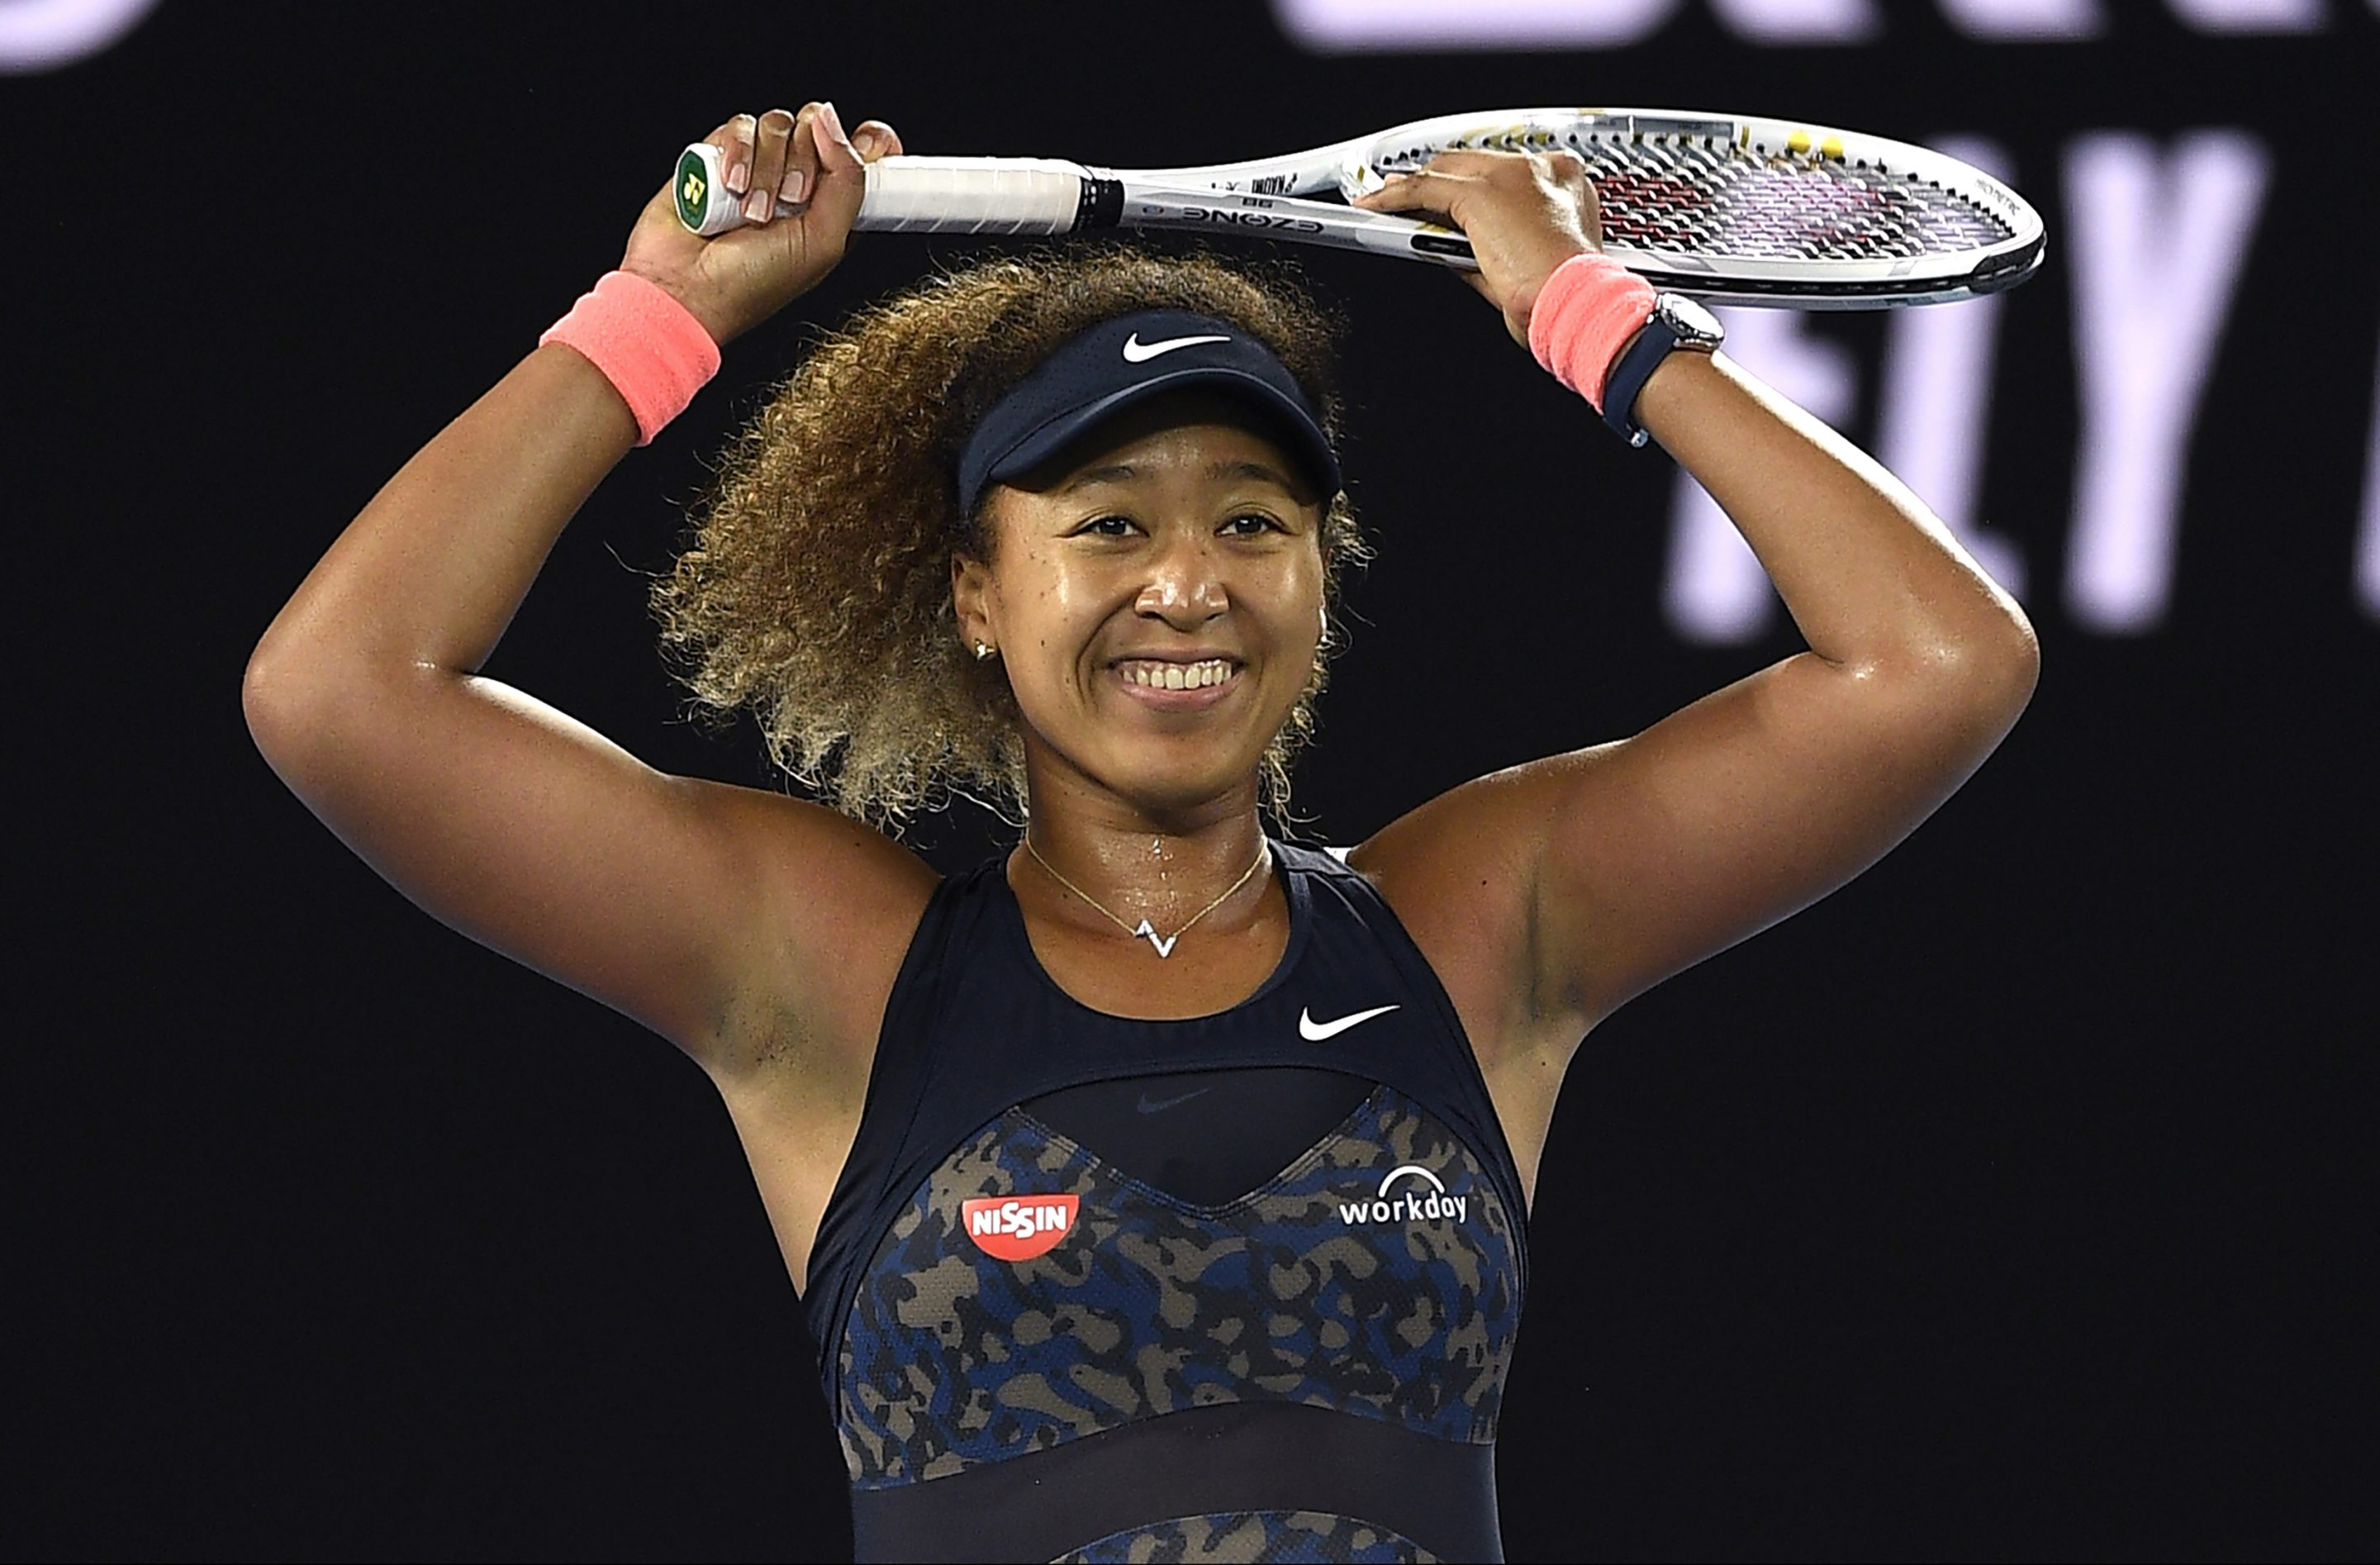 Japan's Naomi Osaka celebrates after defeating United States' Jennifer Brady during the women's singles final at the Australian Open tennis championship in Melbourne, Australia, Saturday, Feb. 20, 2021..(AP Photo/Andy Brownbill)